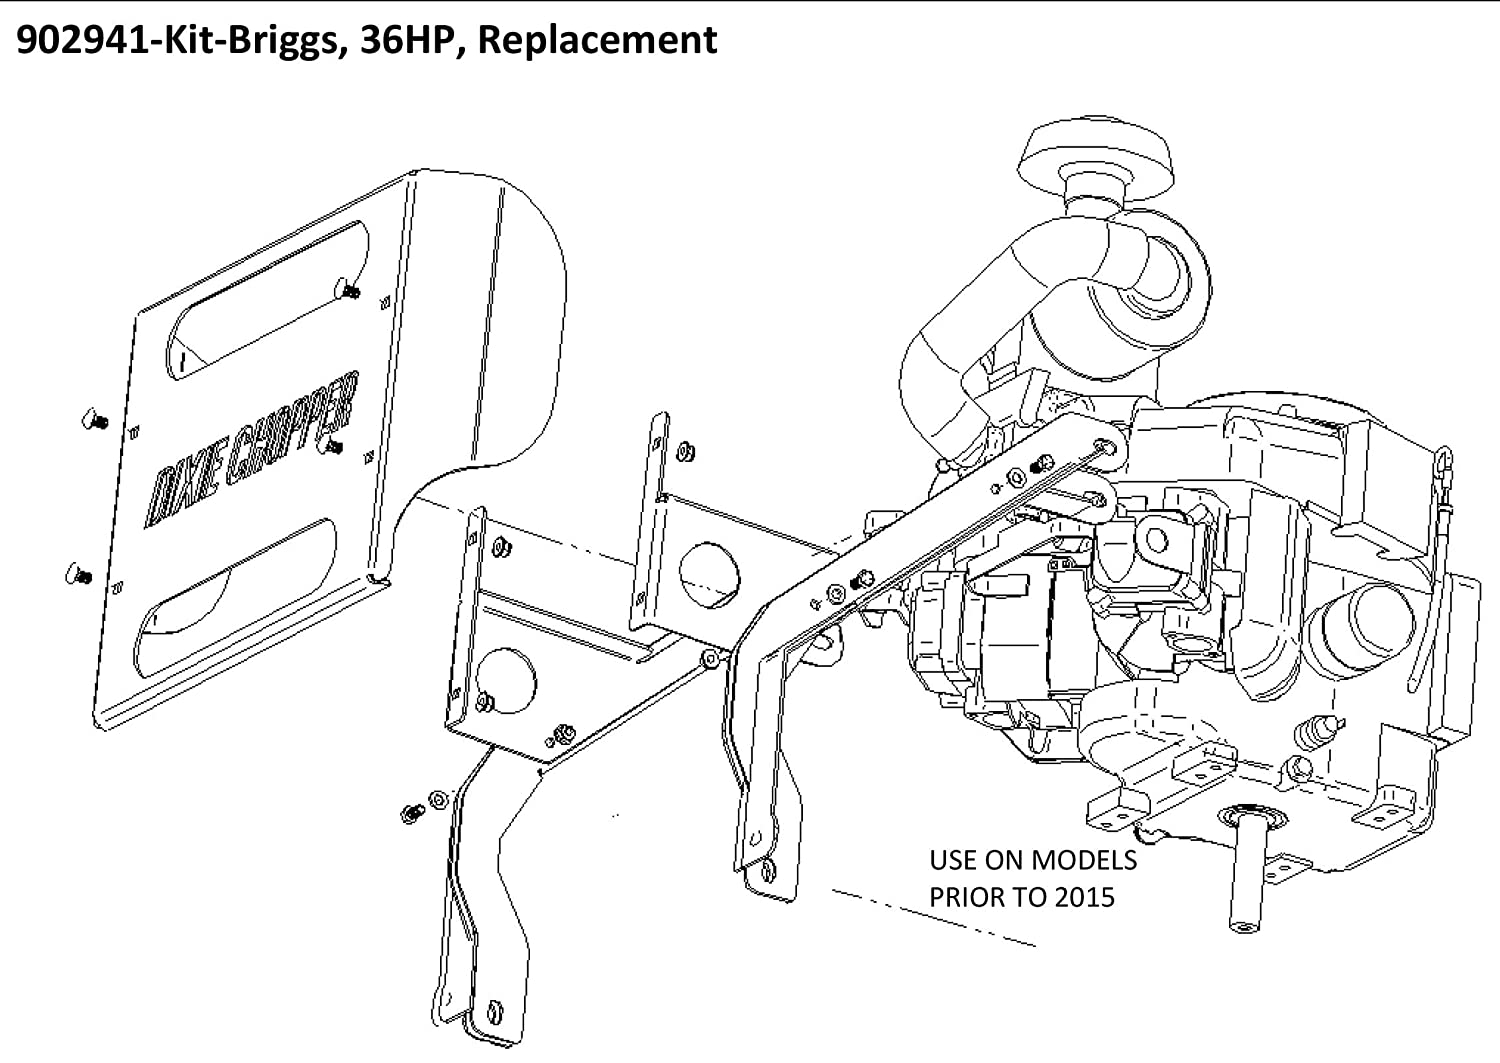 Dixie Chopper Oem Briggs Repl 36 Hp Engine Kit For Vanguard Wiring Diagram 3 Electric Clutch Engines Generac 27 33 902941 Garden Outdoor